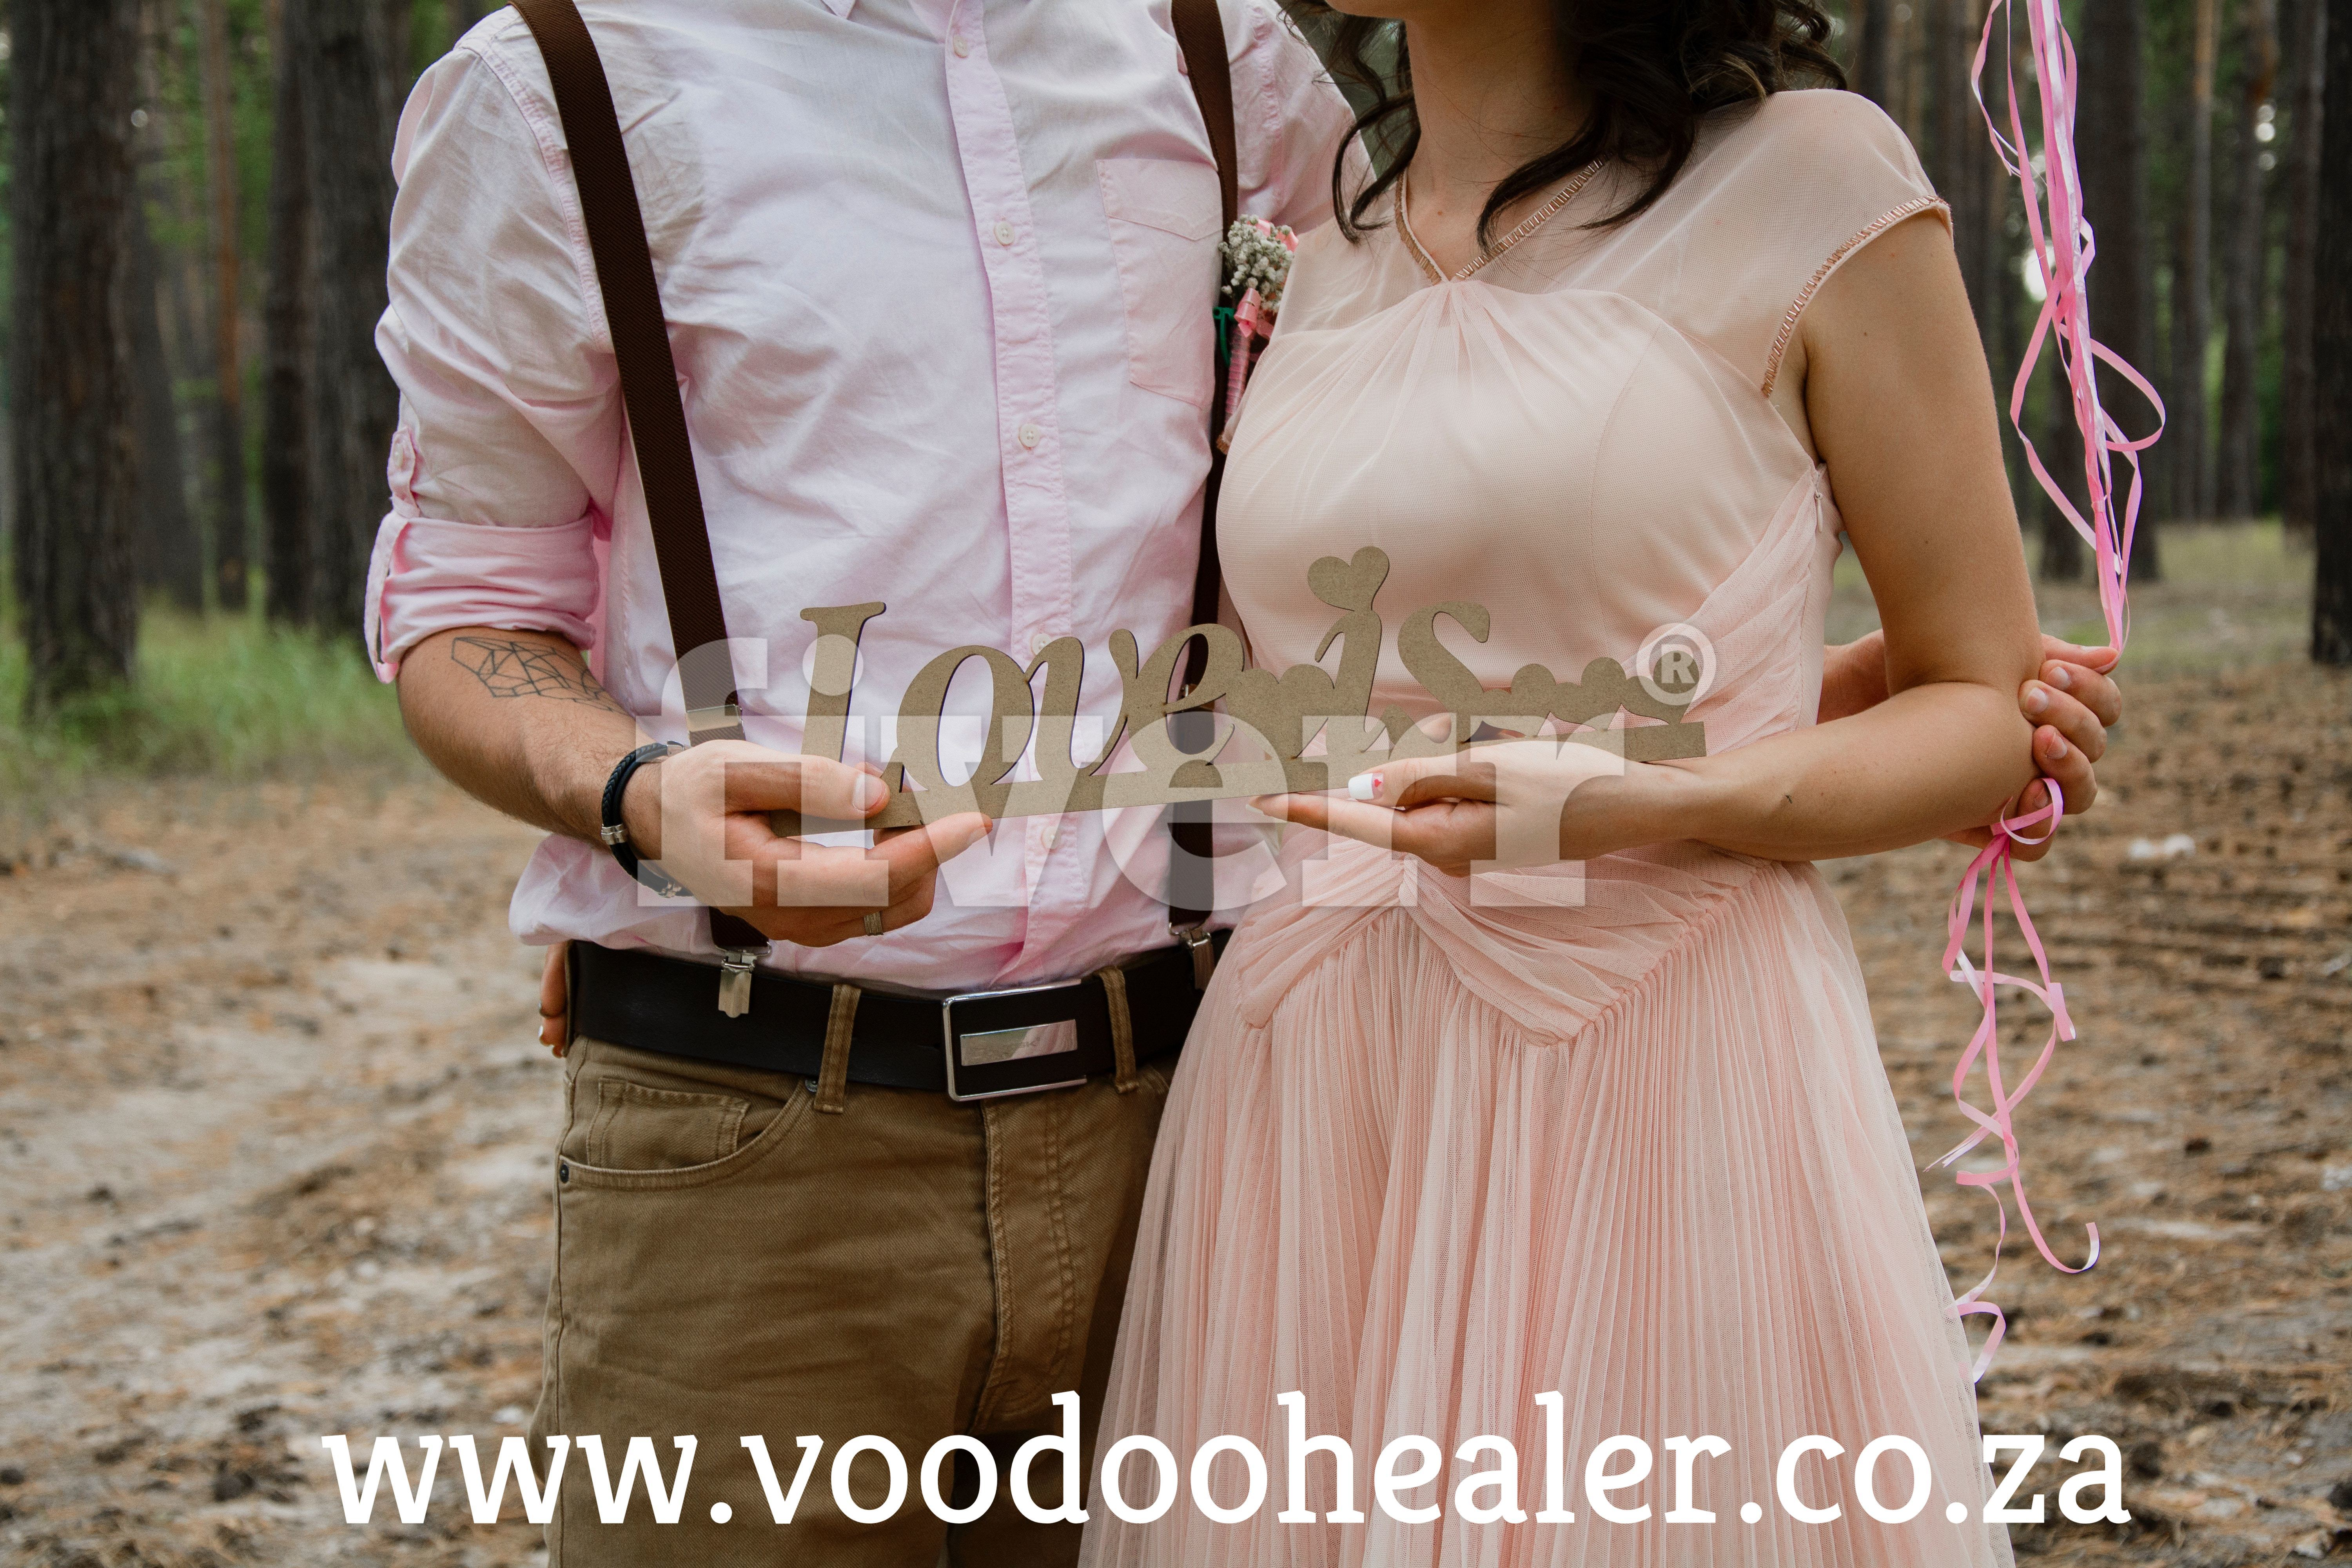 Best Love Spell Caster - Muthi and Love Spells